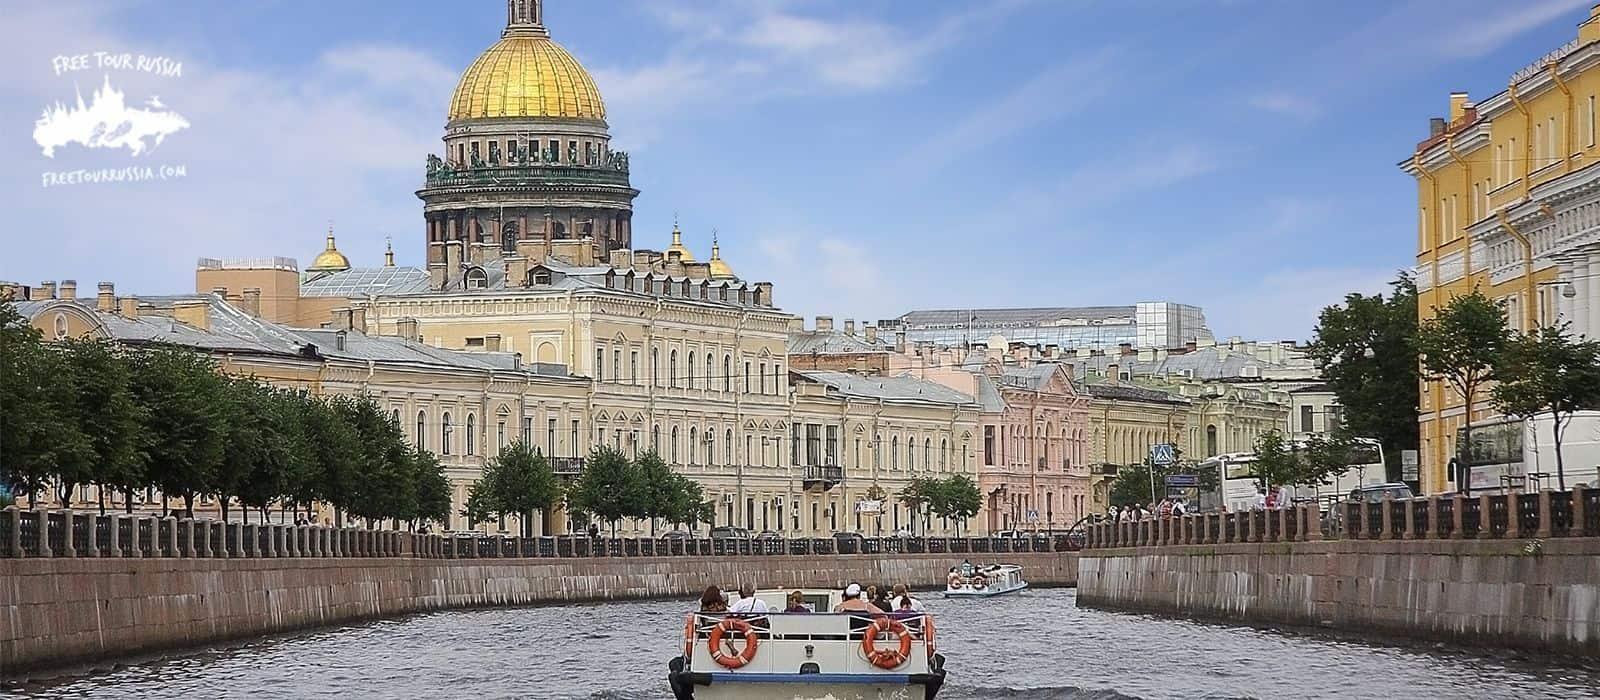 Boat Tour Through St. Petersburg Canals